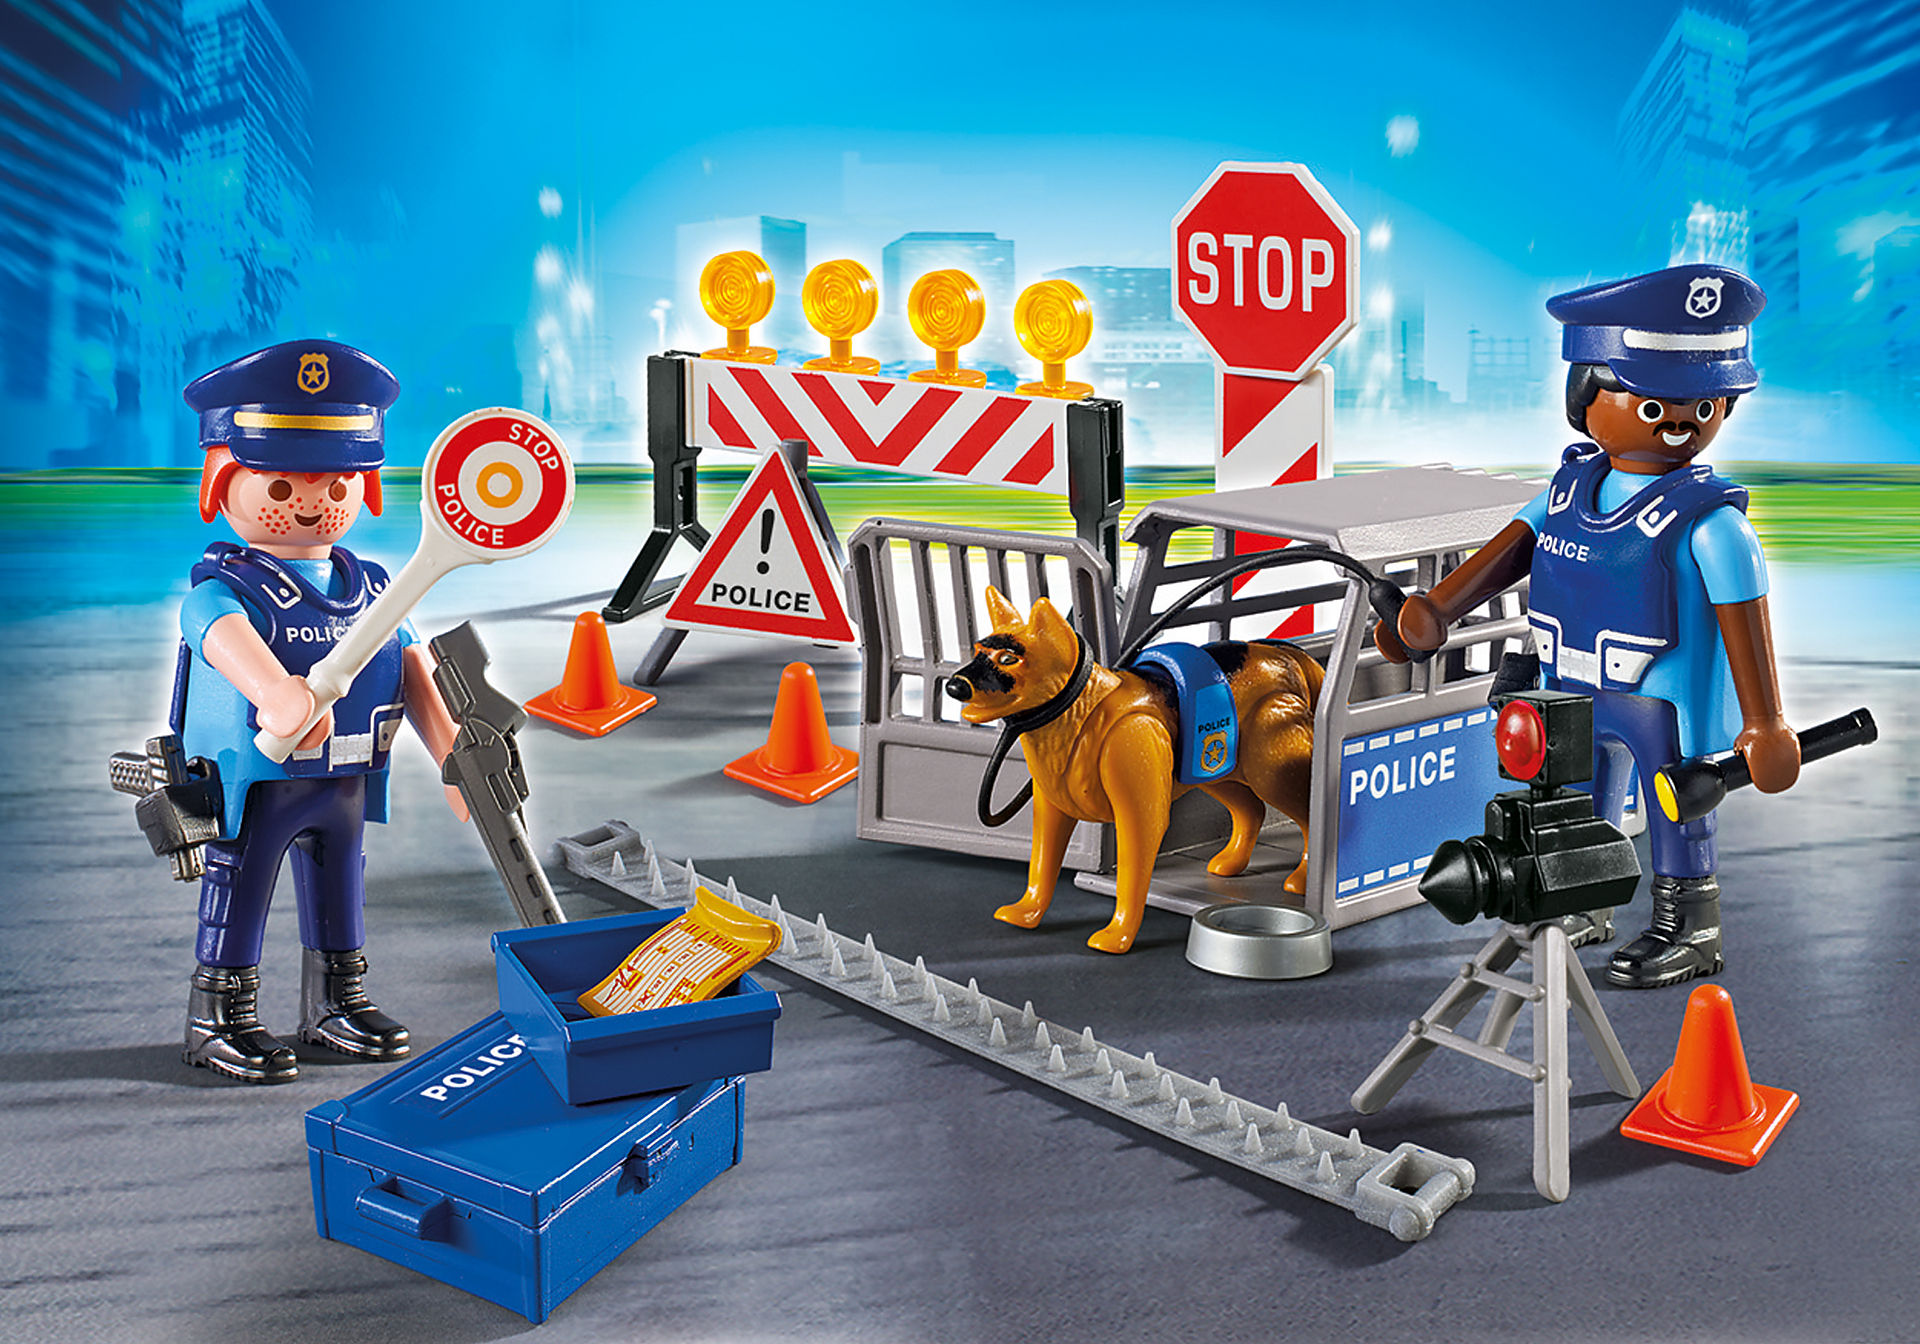 http://media.playmobil.com/i/playmobil/6924_product_detail/Police Roadblock